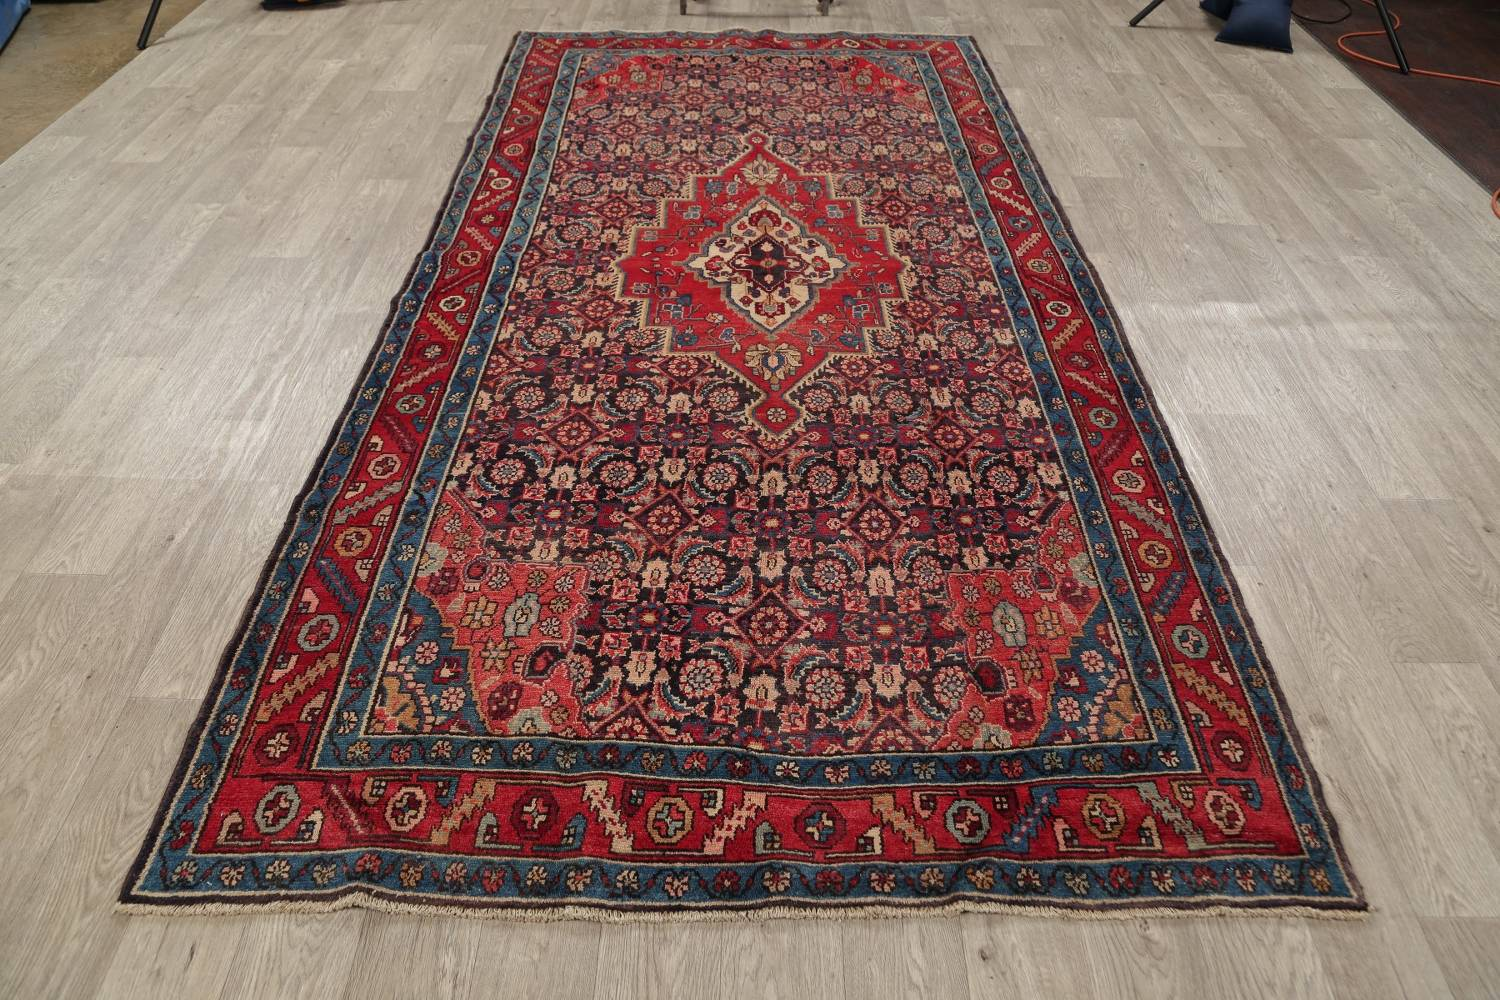 Antique Bakhtiari Persian Hand-Knotted 5x10 Wool Runner Rug image 14